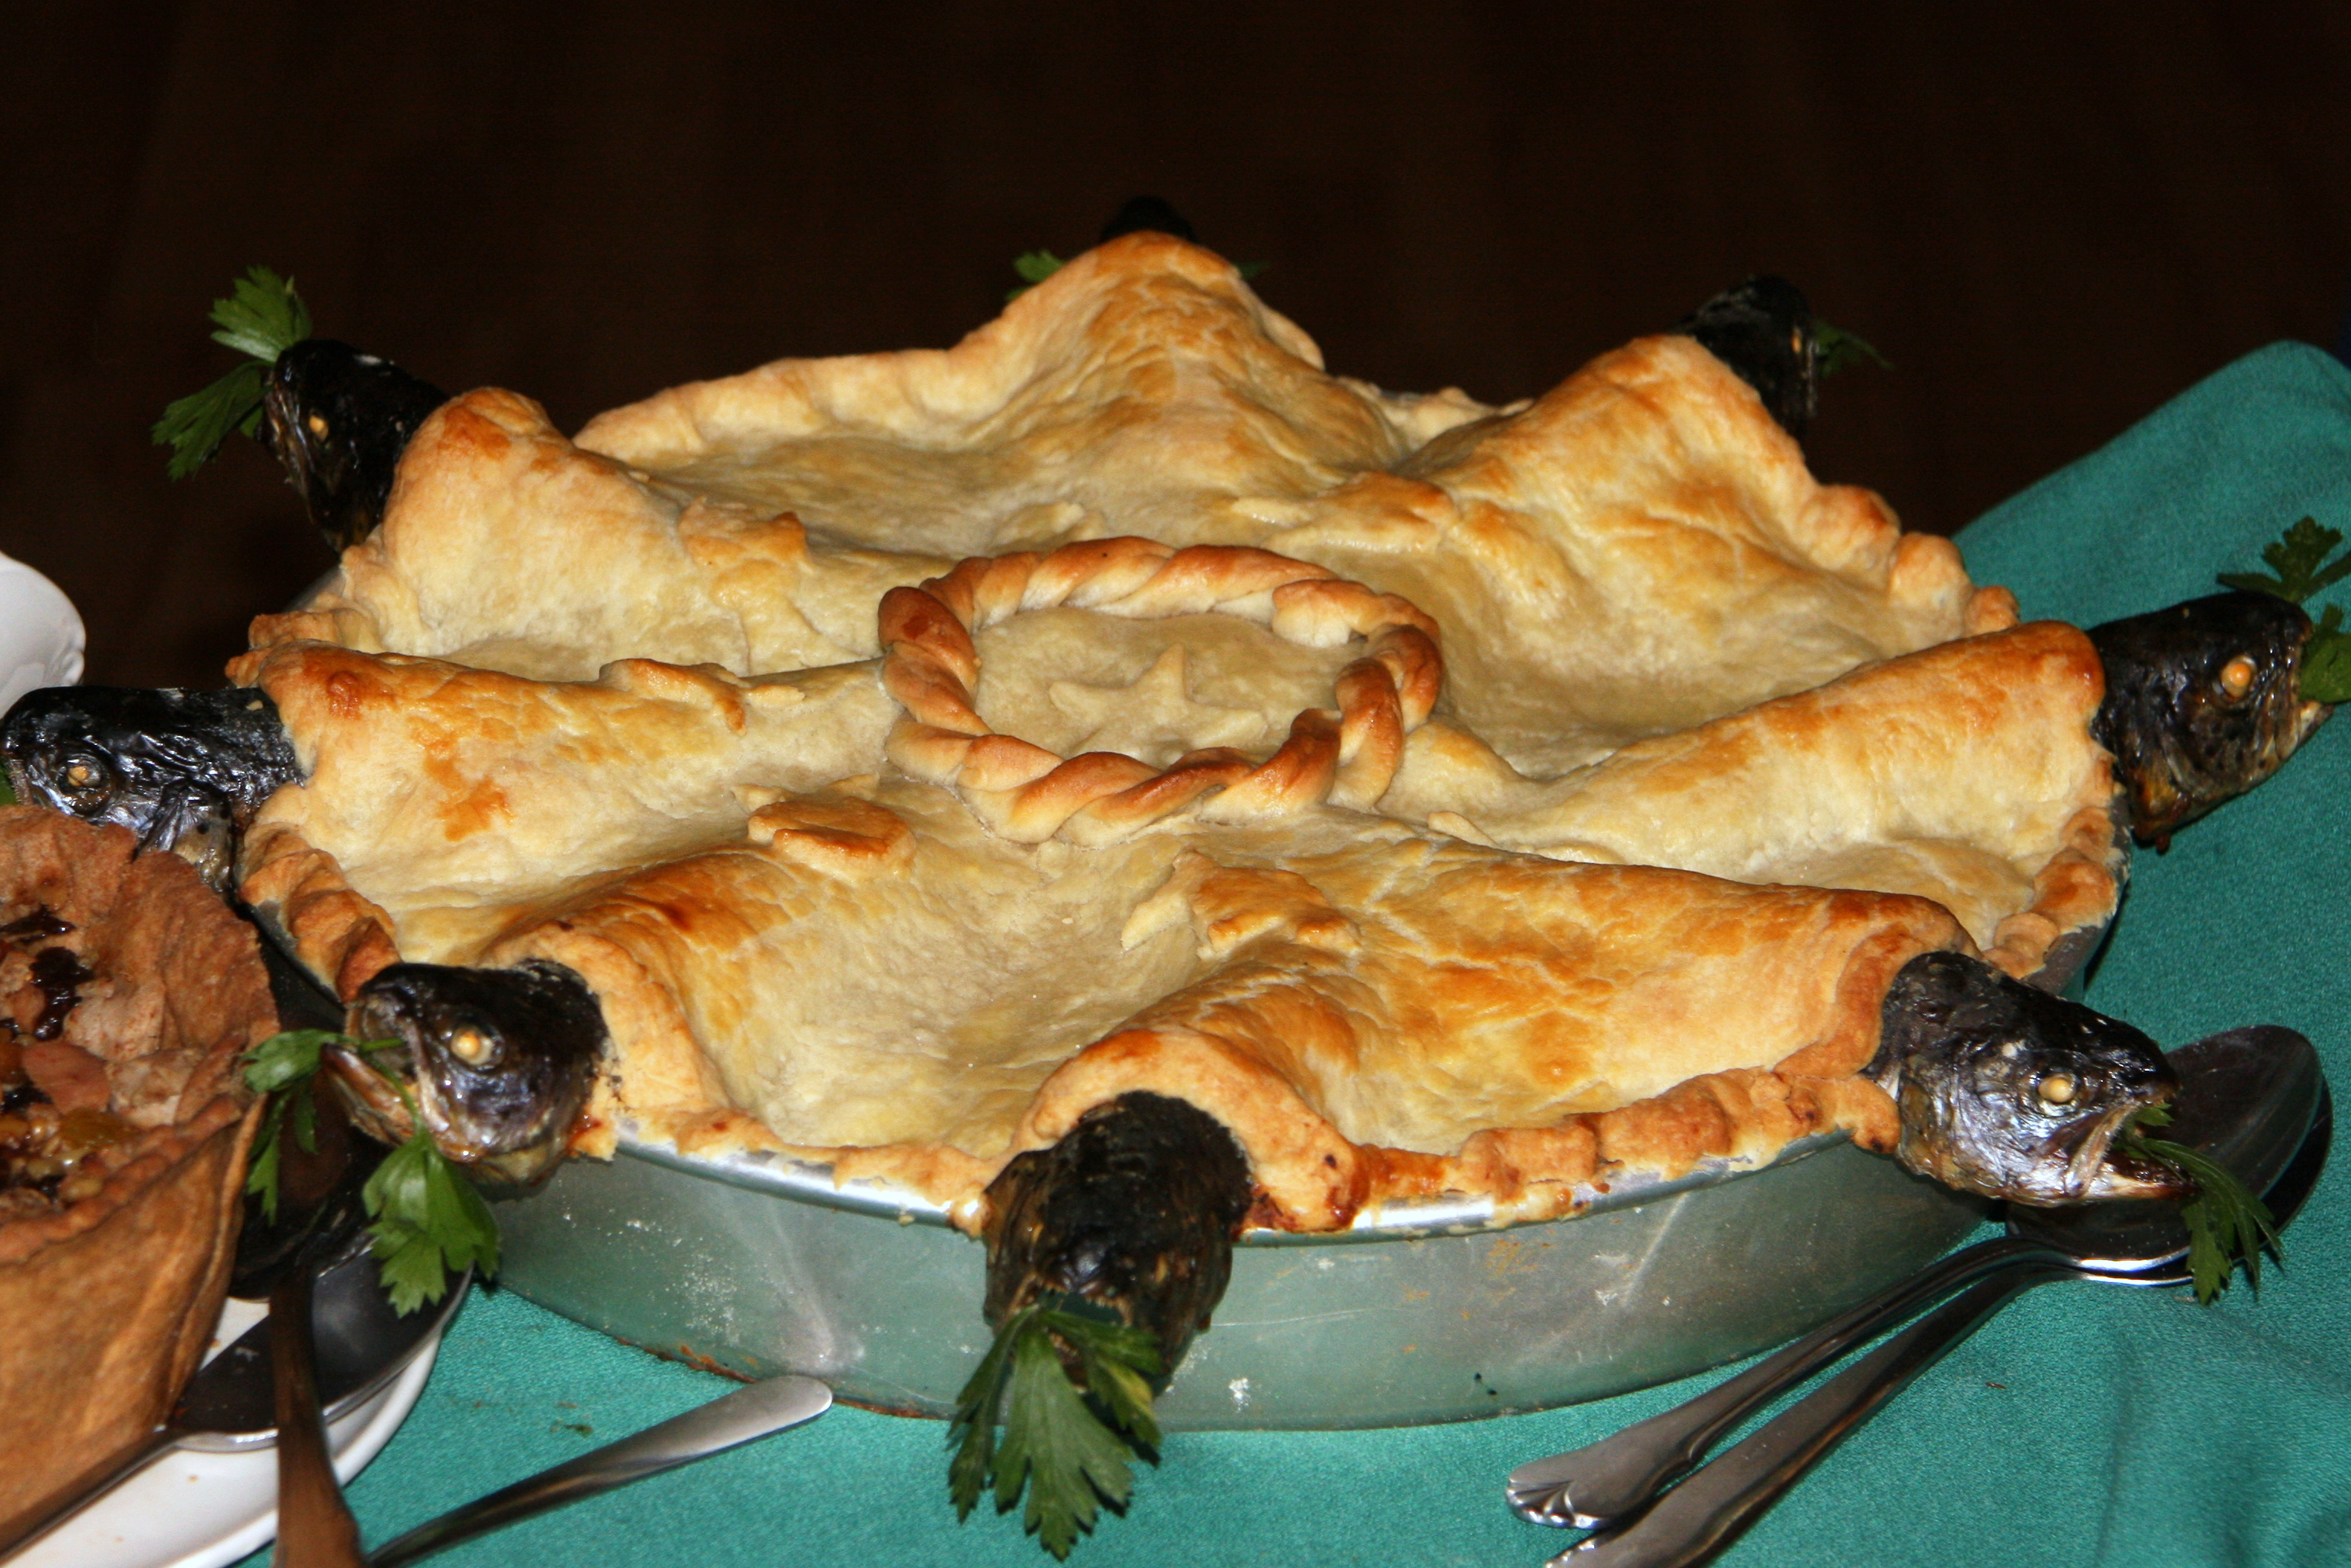 Behold the stargazy pie, a fish pie with sardines poking out of the piecrust, looking at the stars.